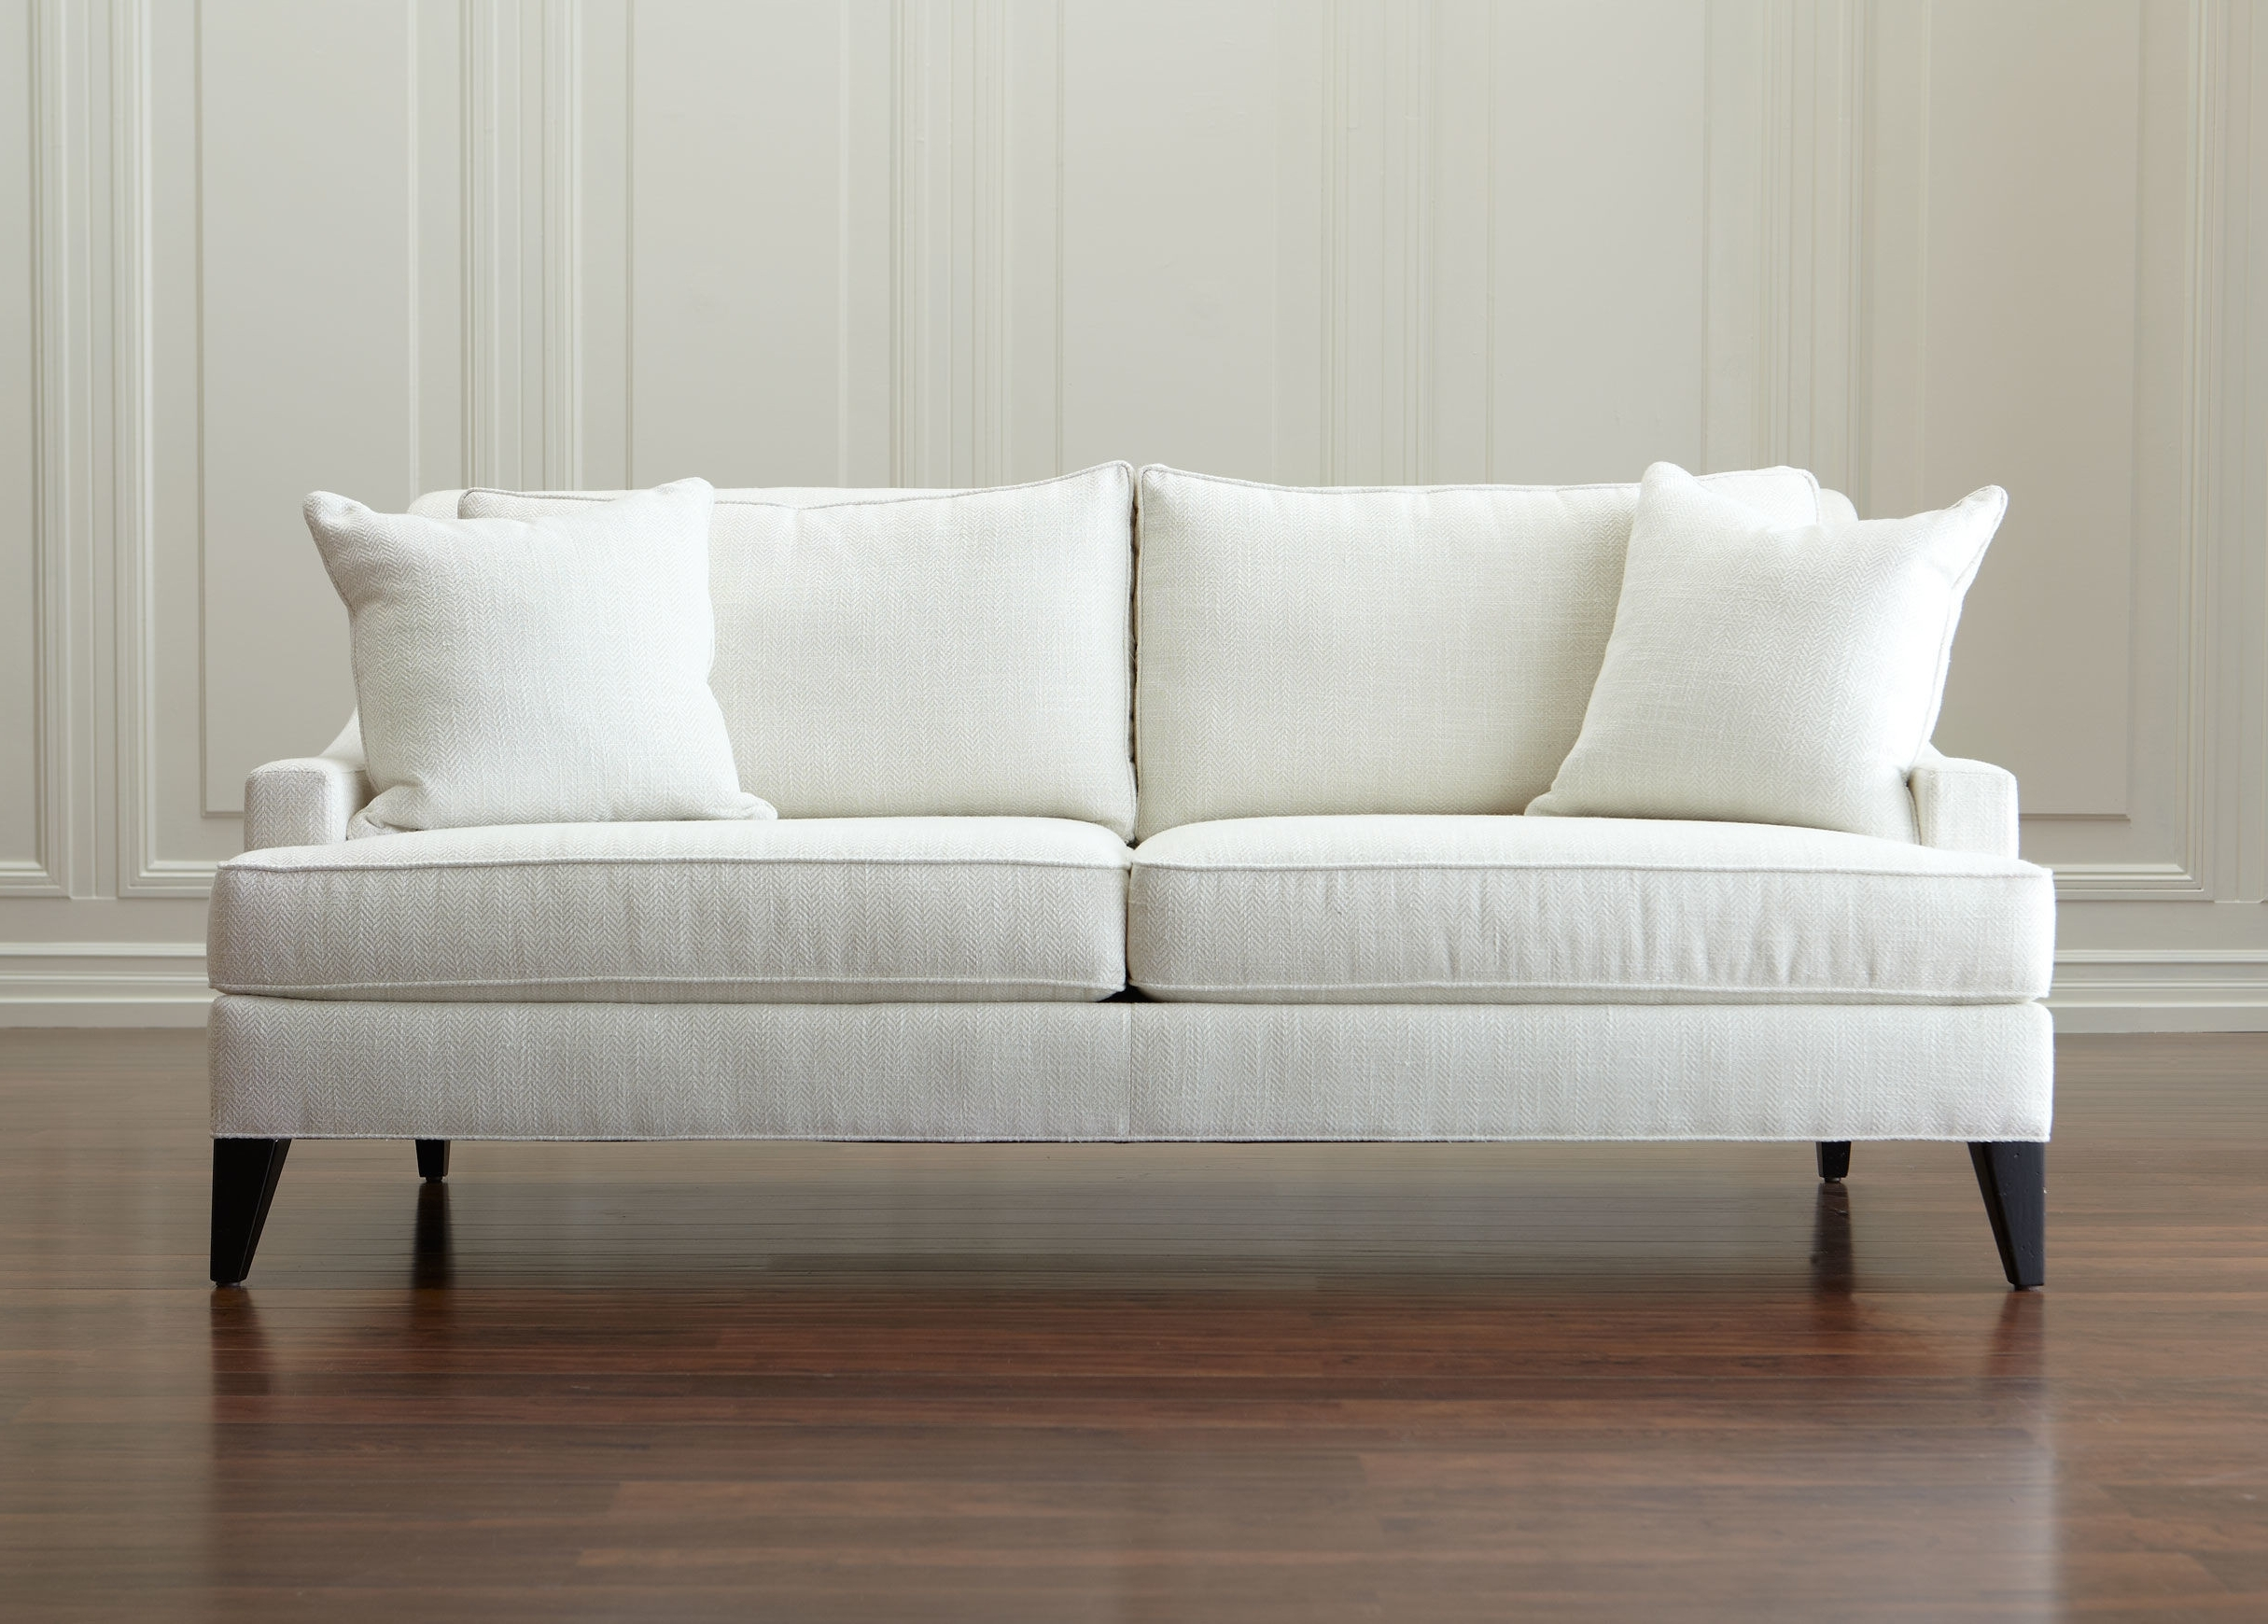 Favorite Furniture : Ethan Allen Down Filled Sofa Luxury Best Ethan Allen Intended For Down Filled Sofas (View 6 of 15)